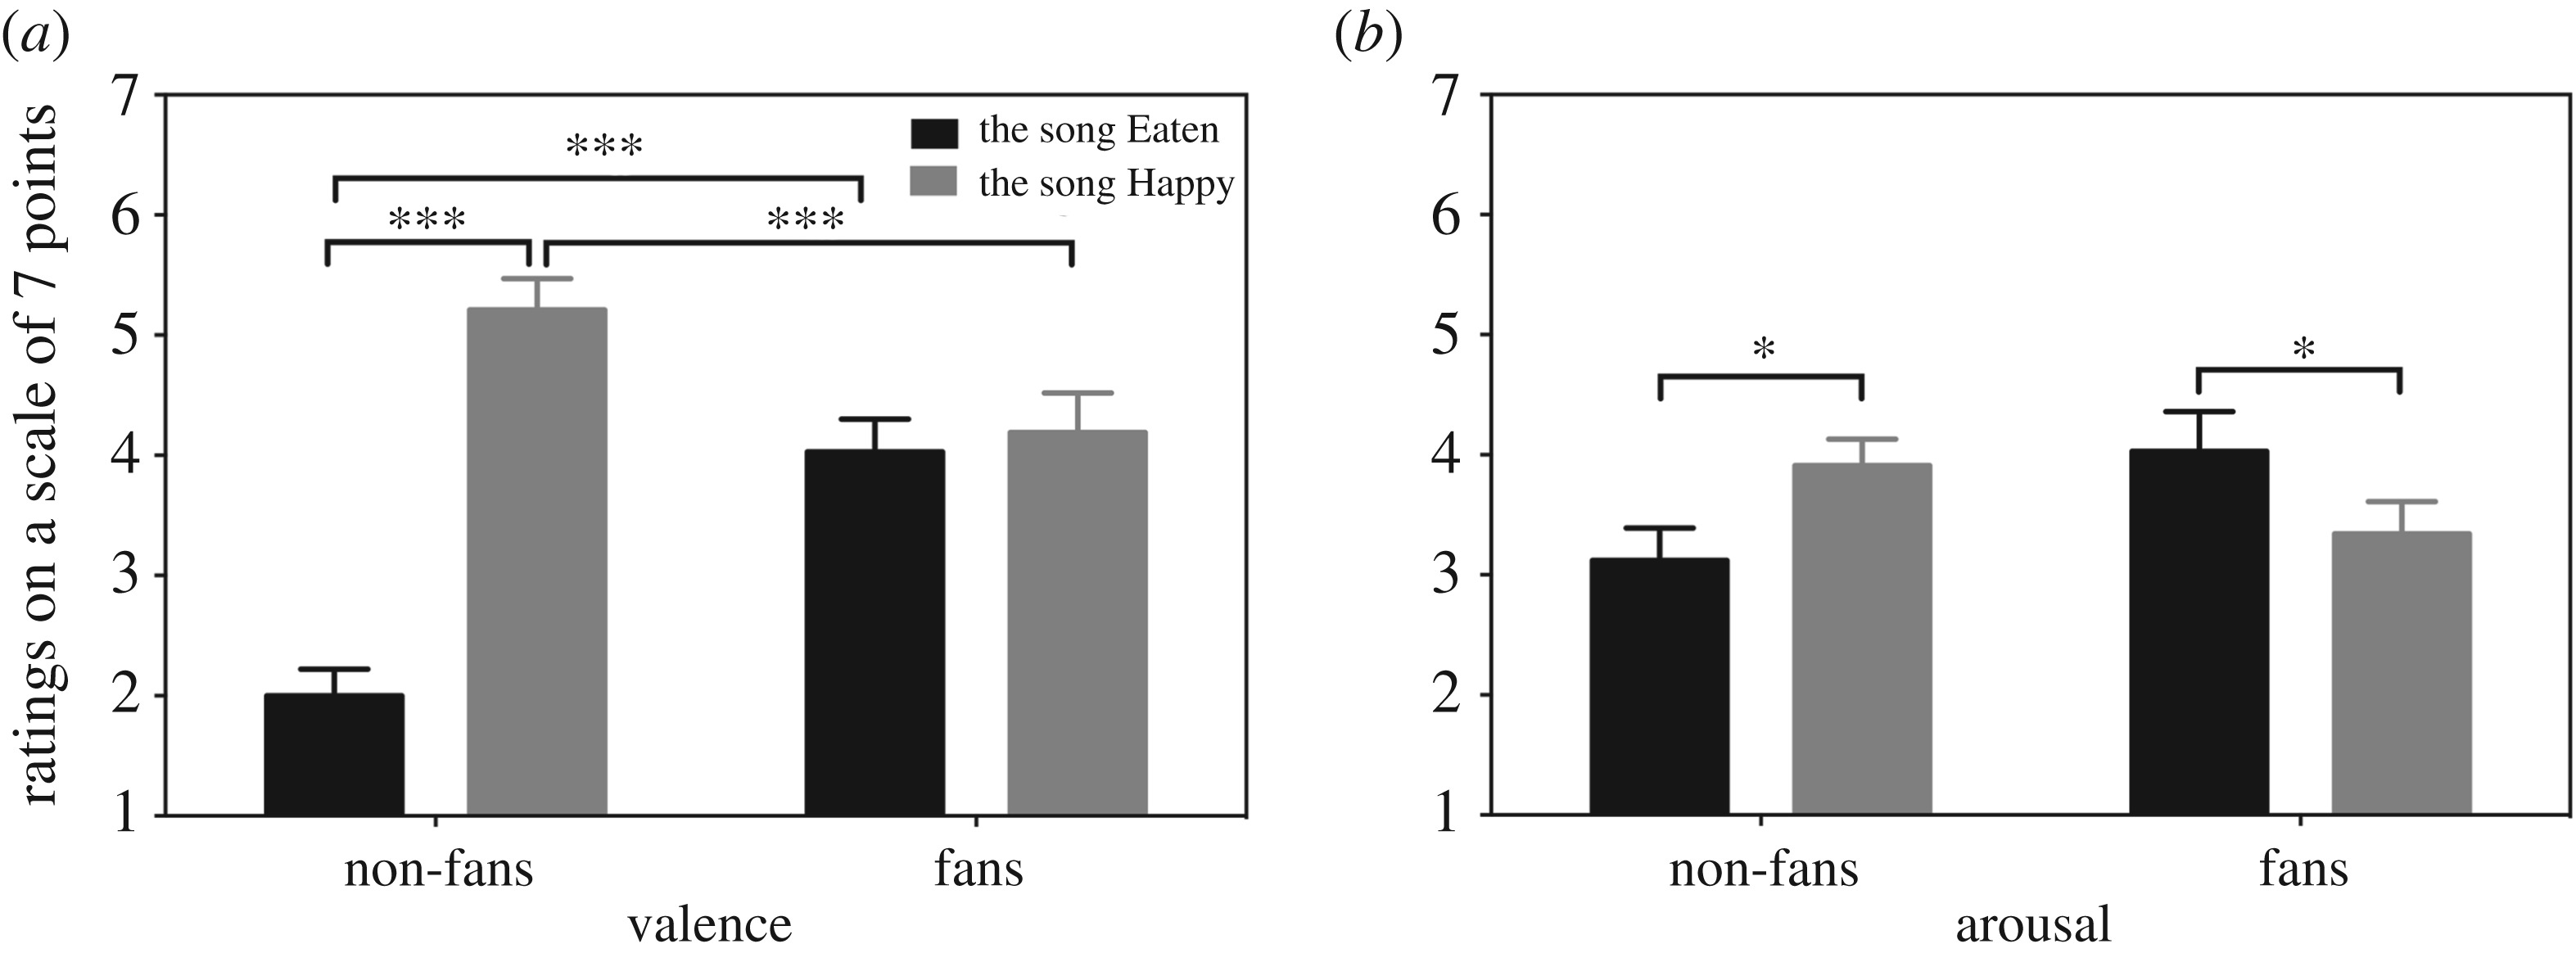 Implicit violent imagery processing among fans and non-fans of music